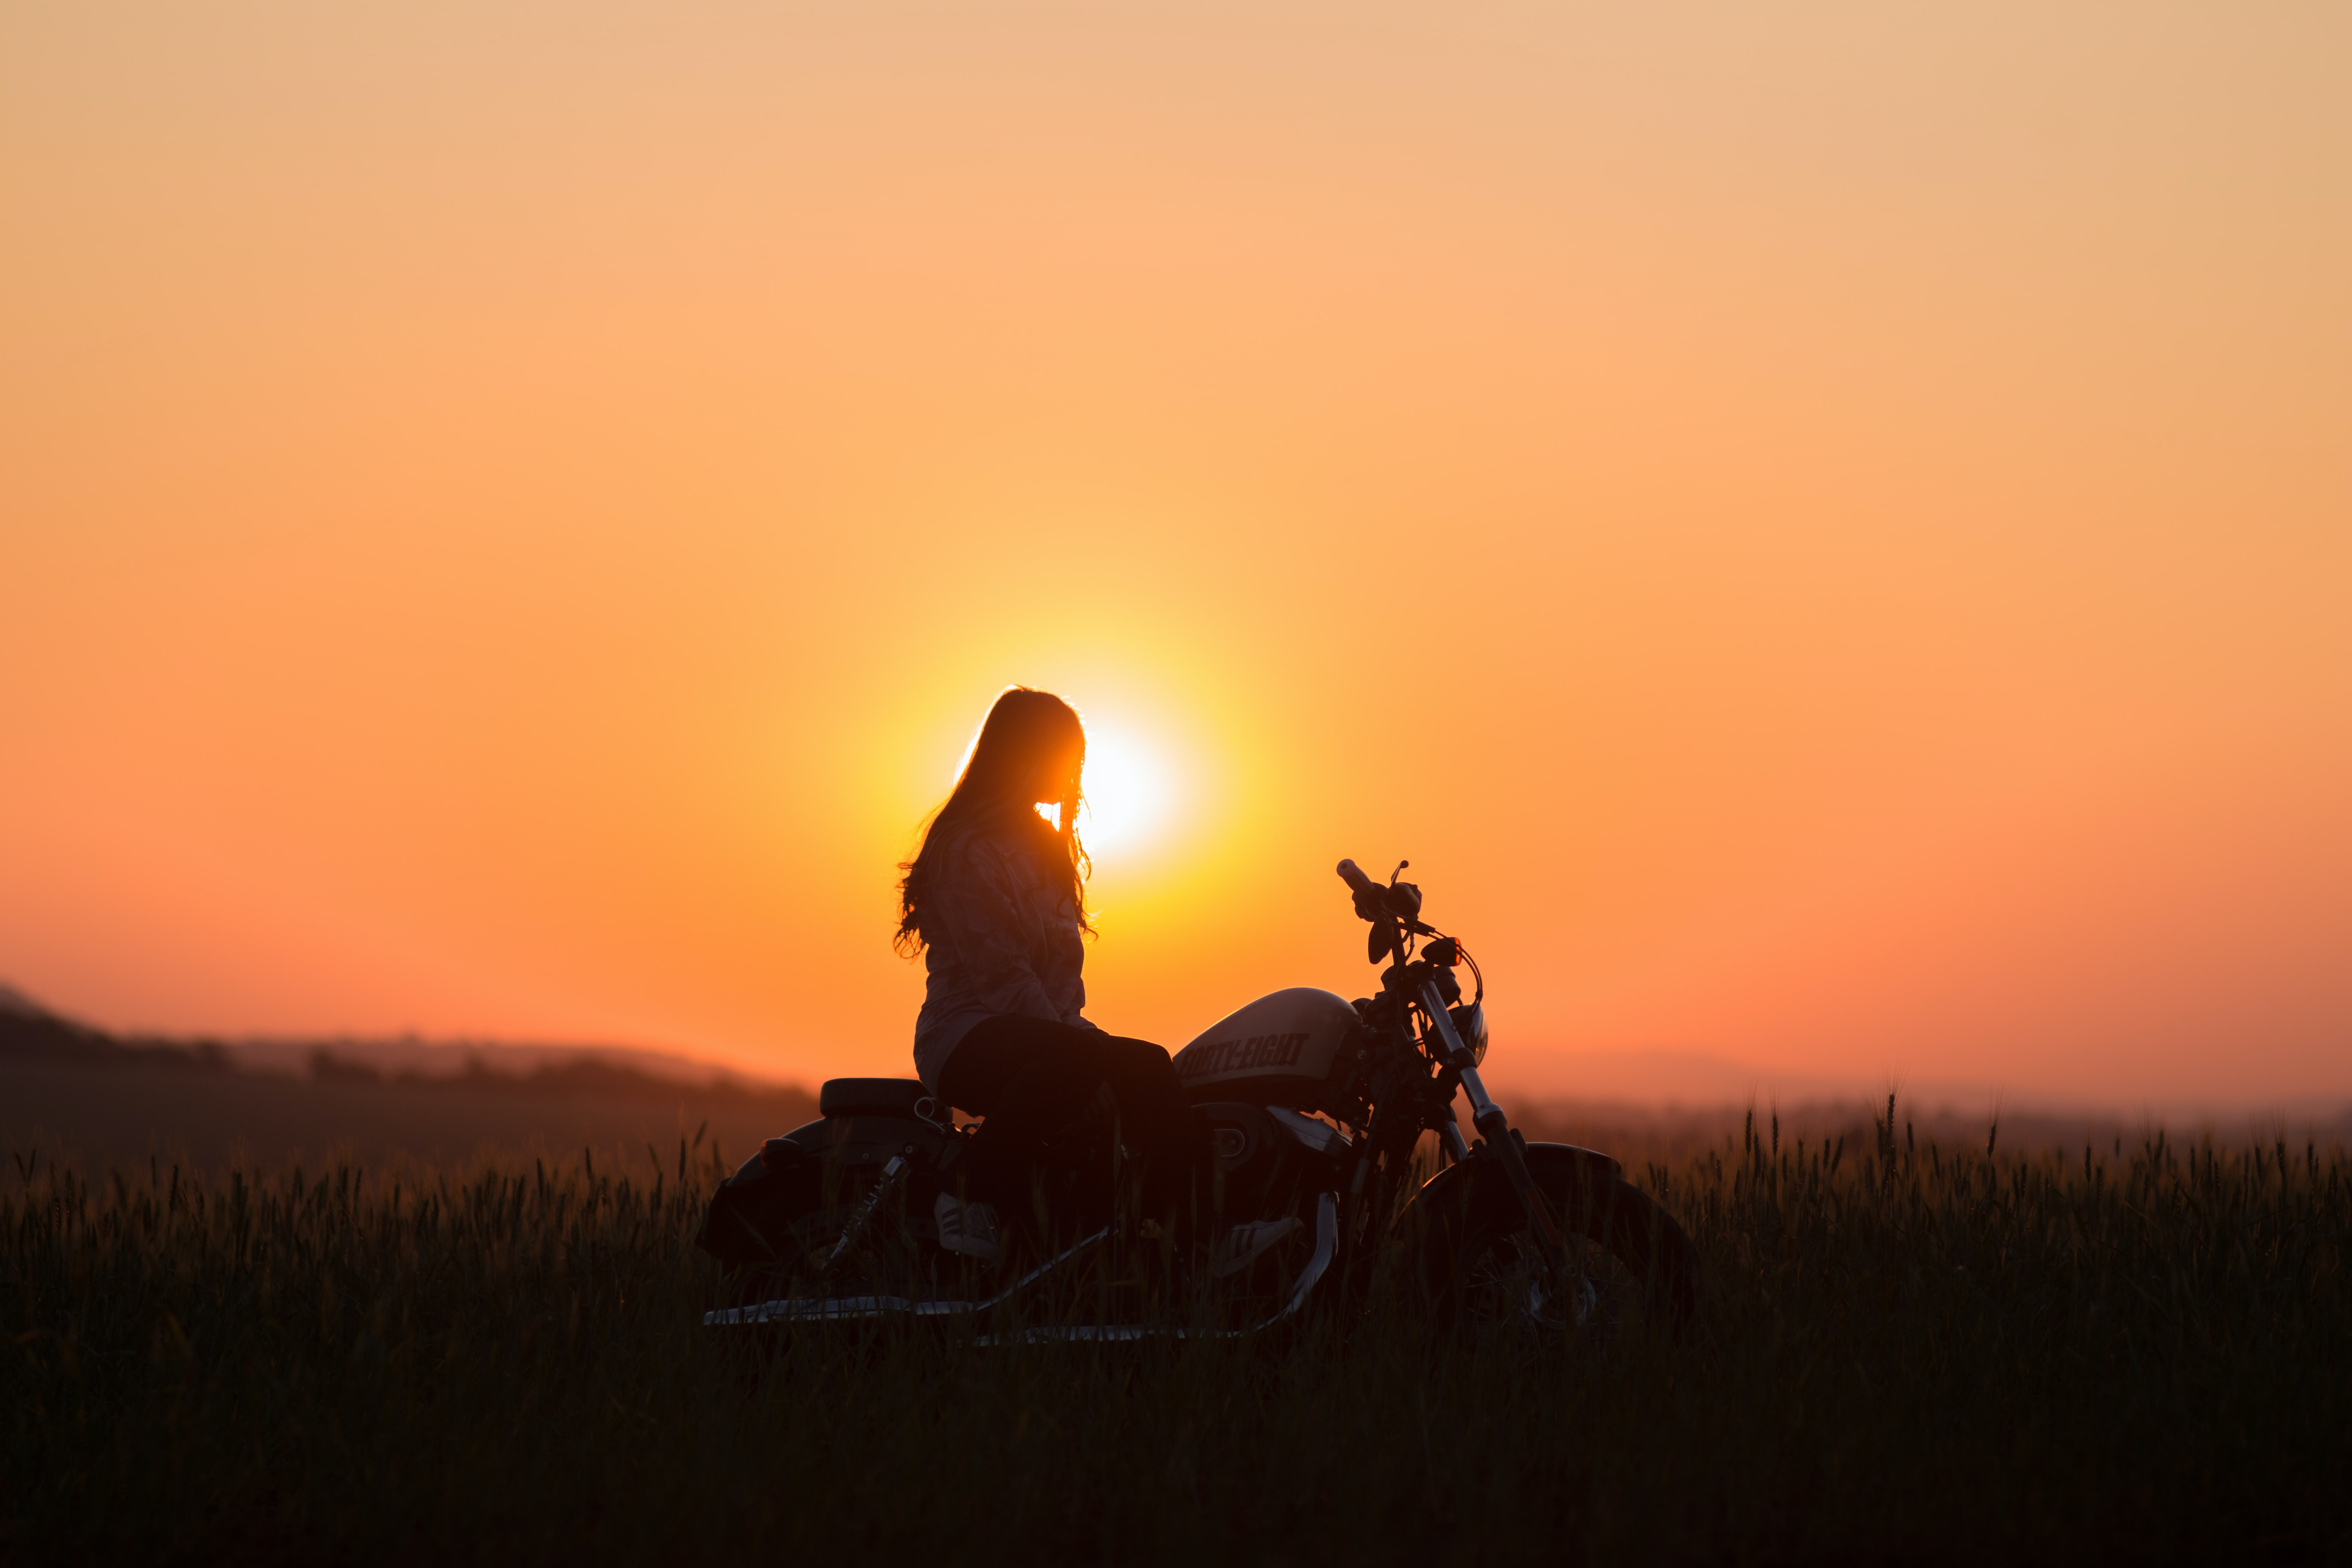 A silhouette woman sits on a motorbike as the sunset turns the sky orange.